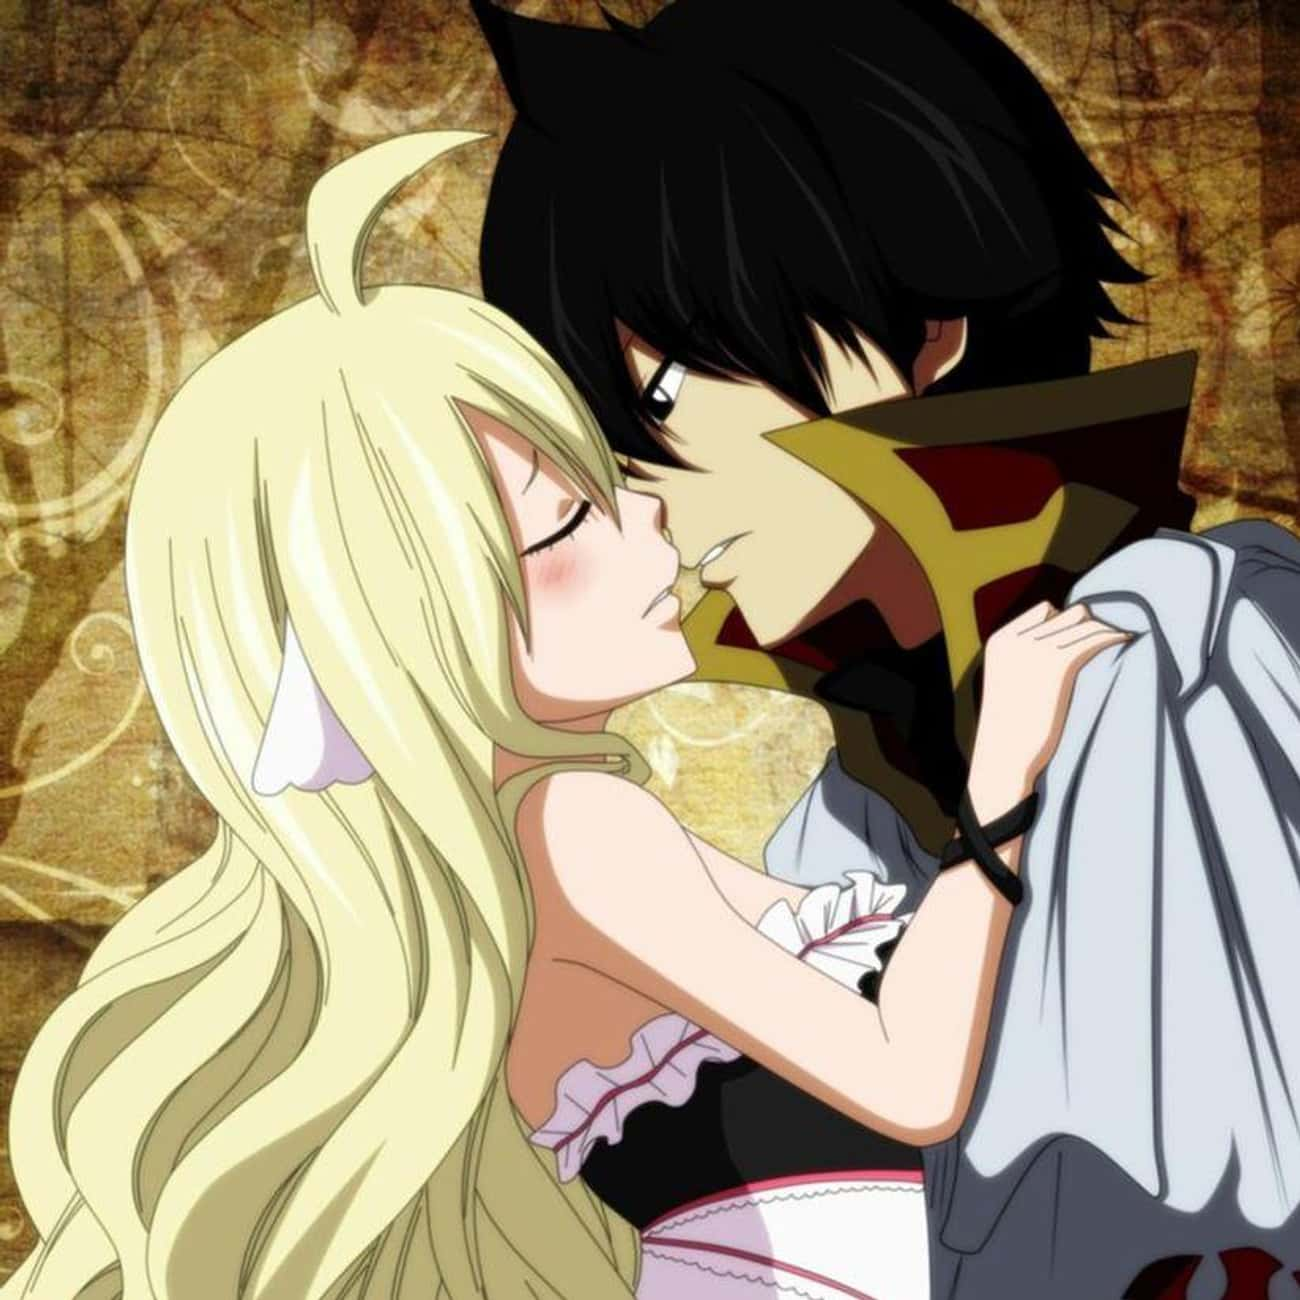 Zeref And Mavis is listed (or ranked) 3 on the list The 15 Greatest Fairy Tail Ships